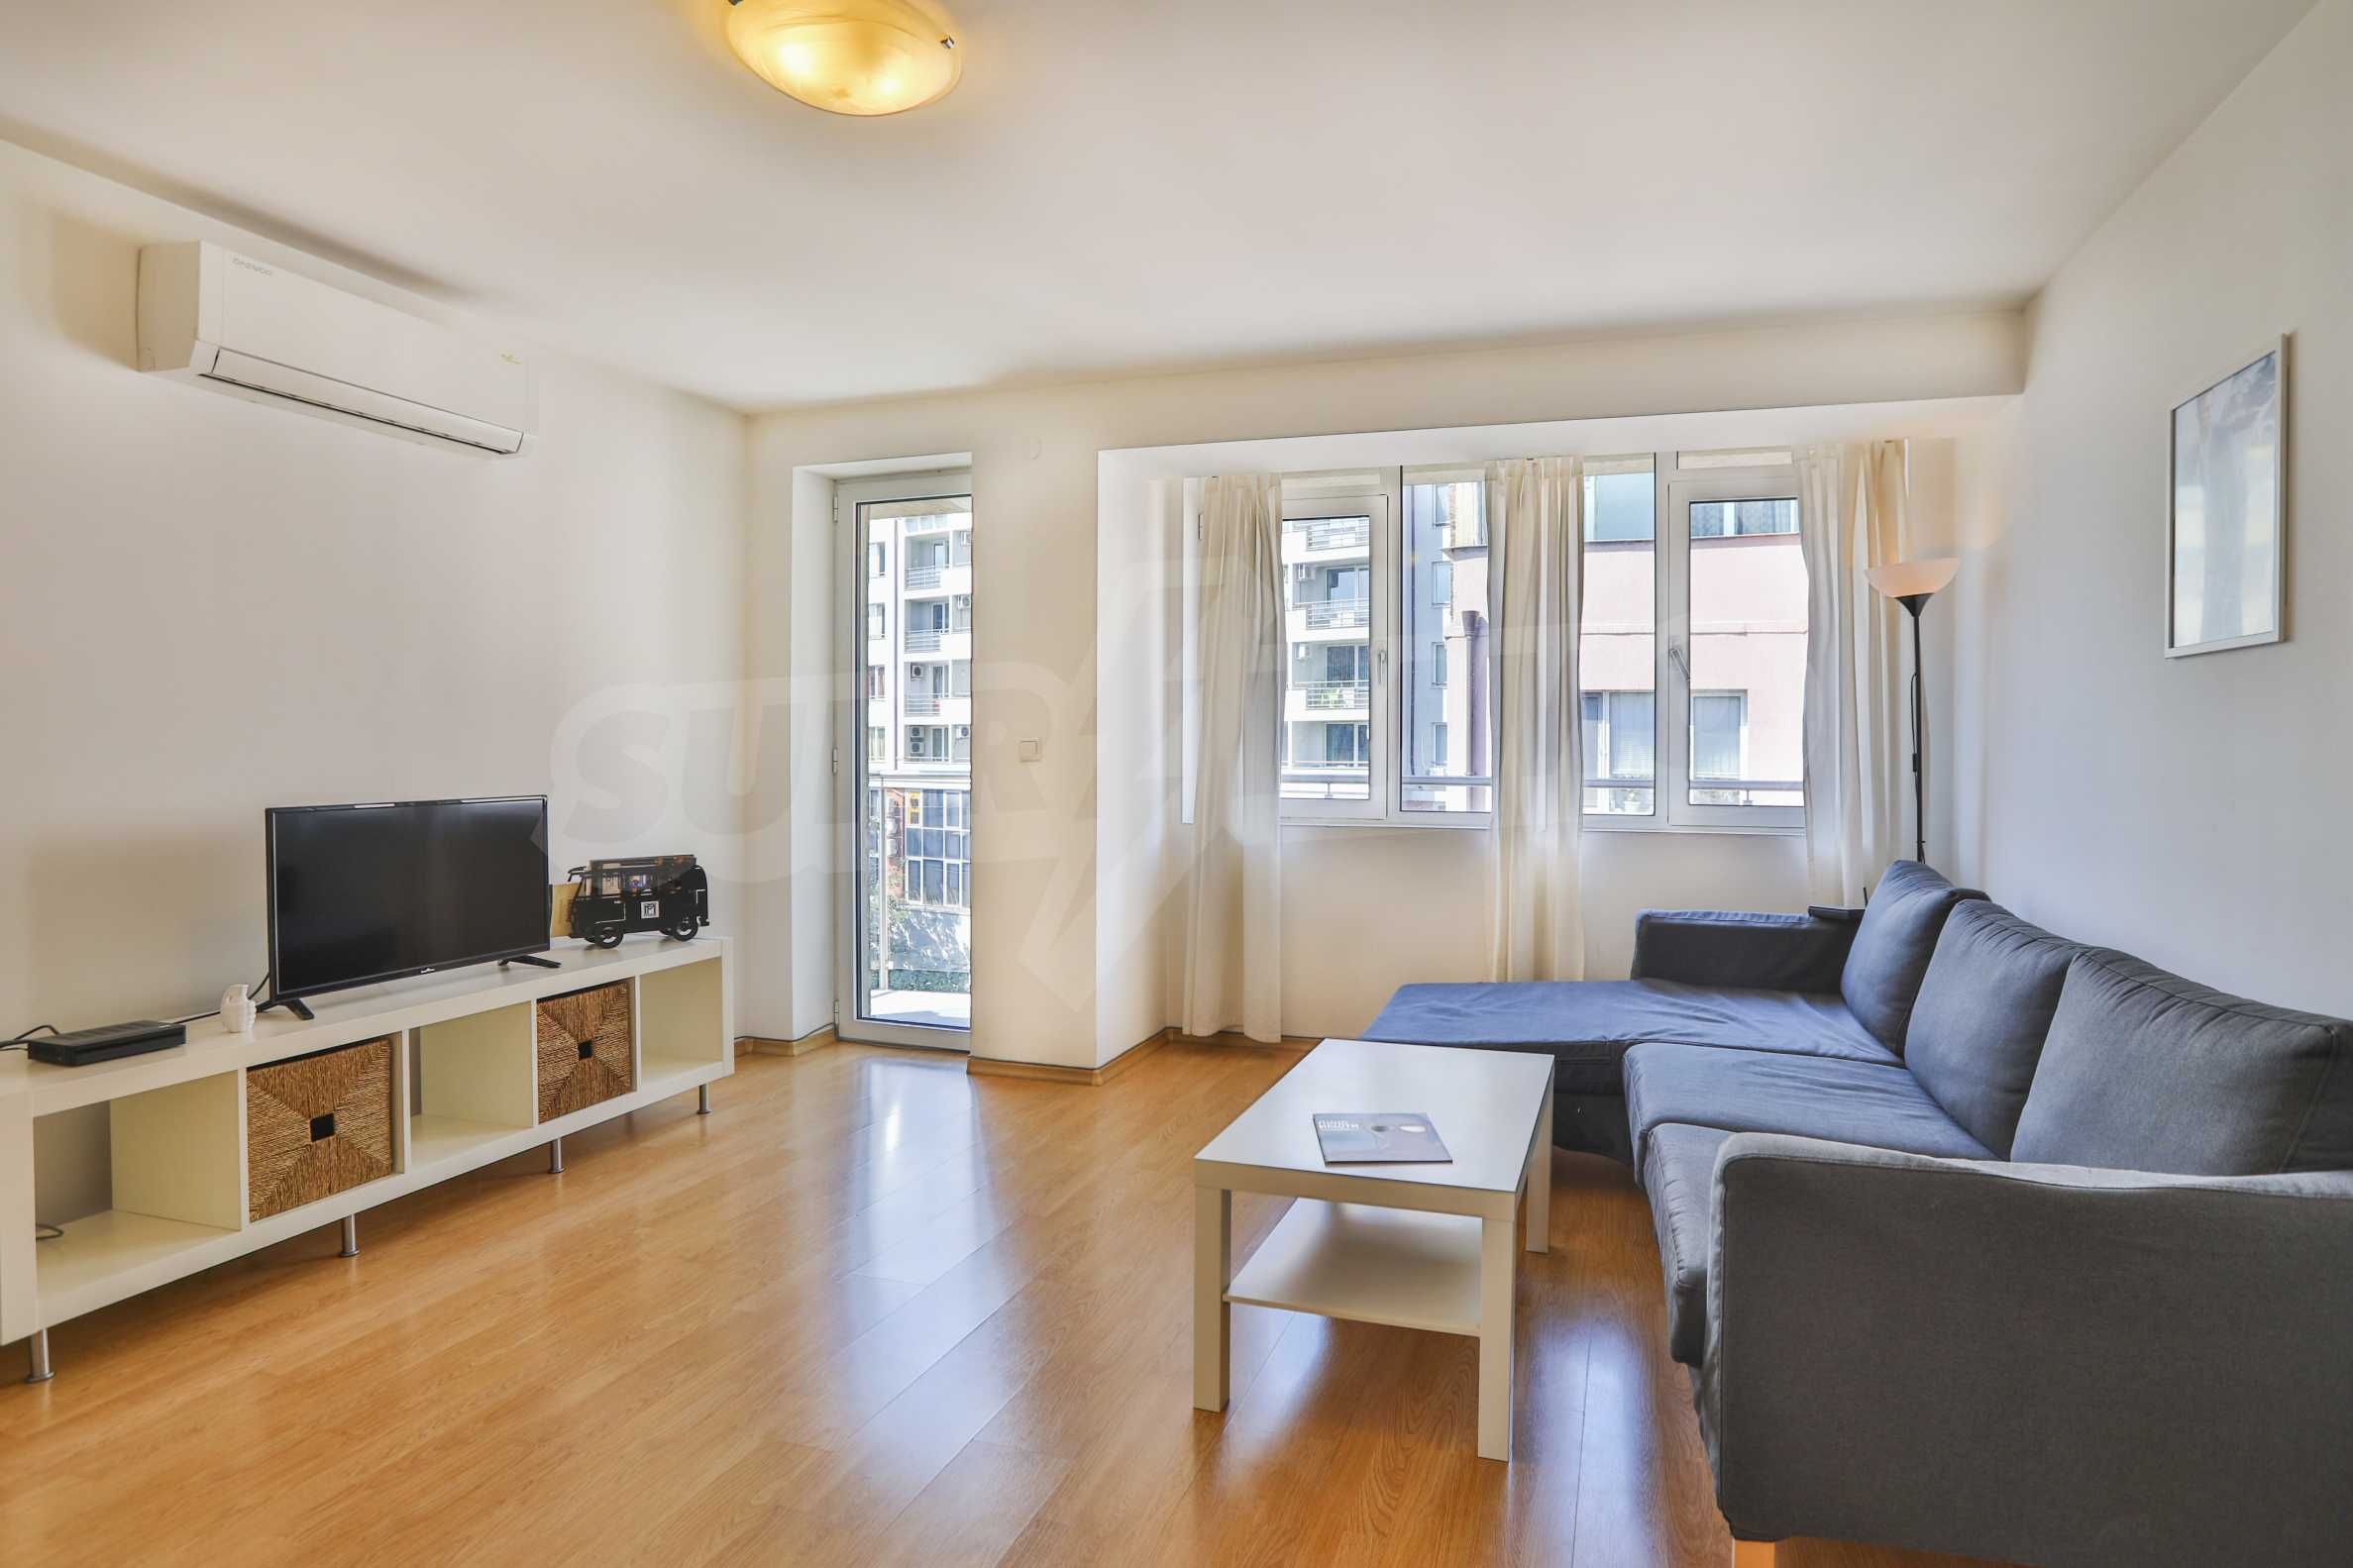 Two-bedroom apartment in the center with high rating on Airbnb